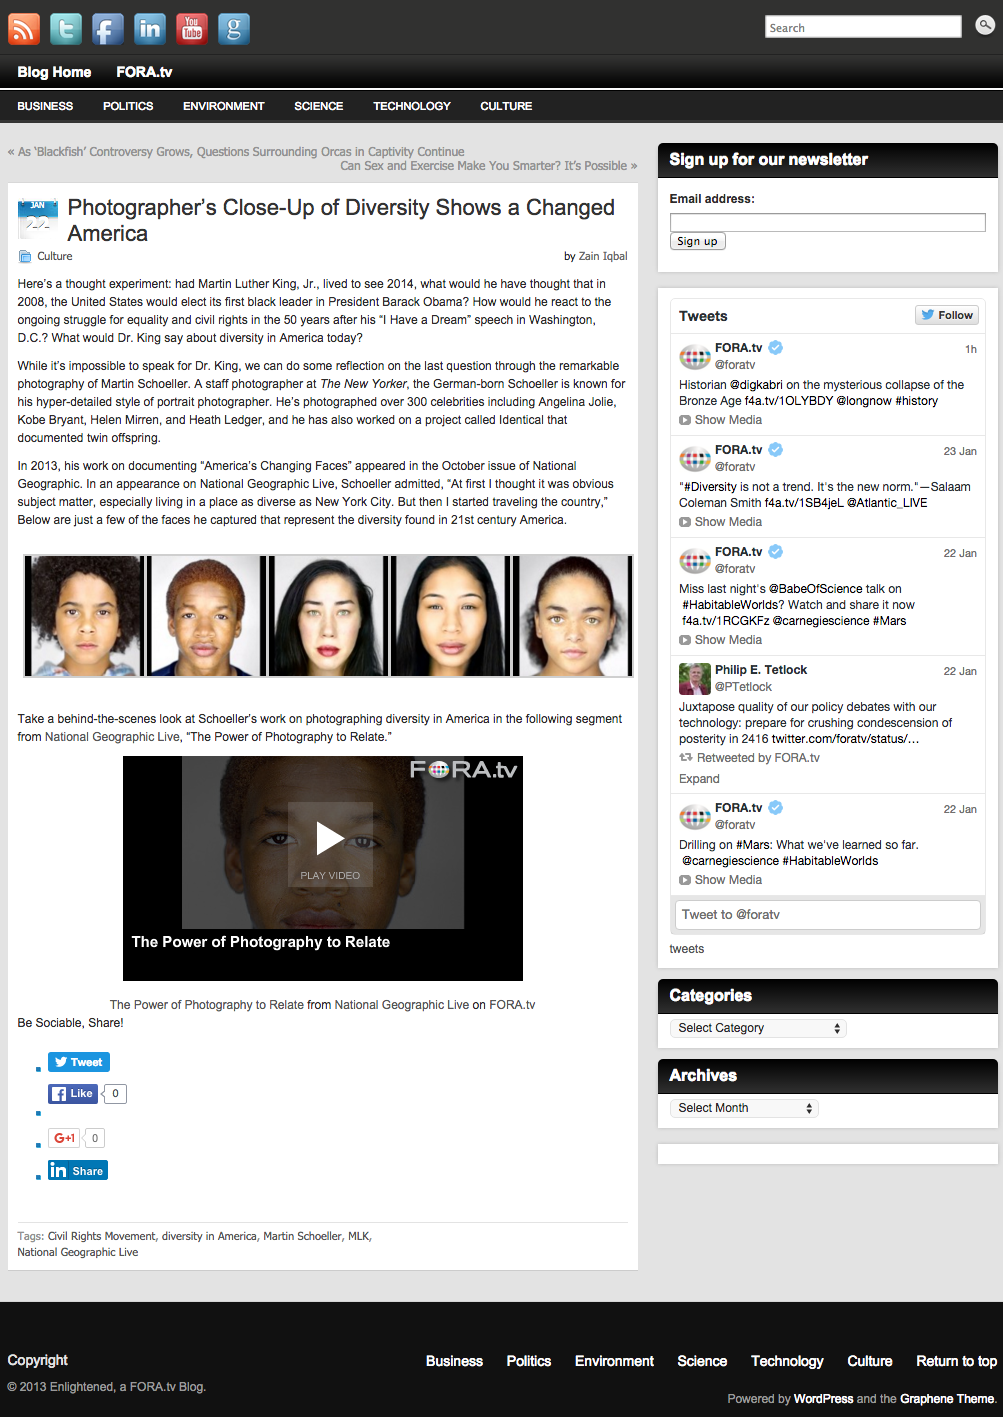 screencapture-enarchive-fora-tv-2014-01-photographers-close-up-of-diversity-shows-a-changed-america.png